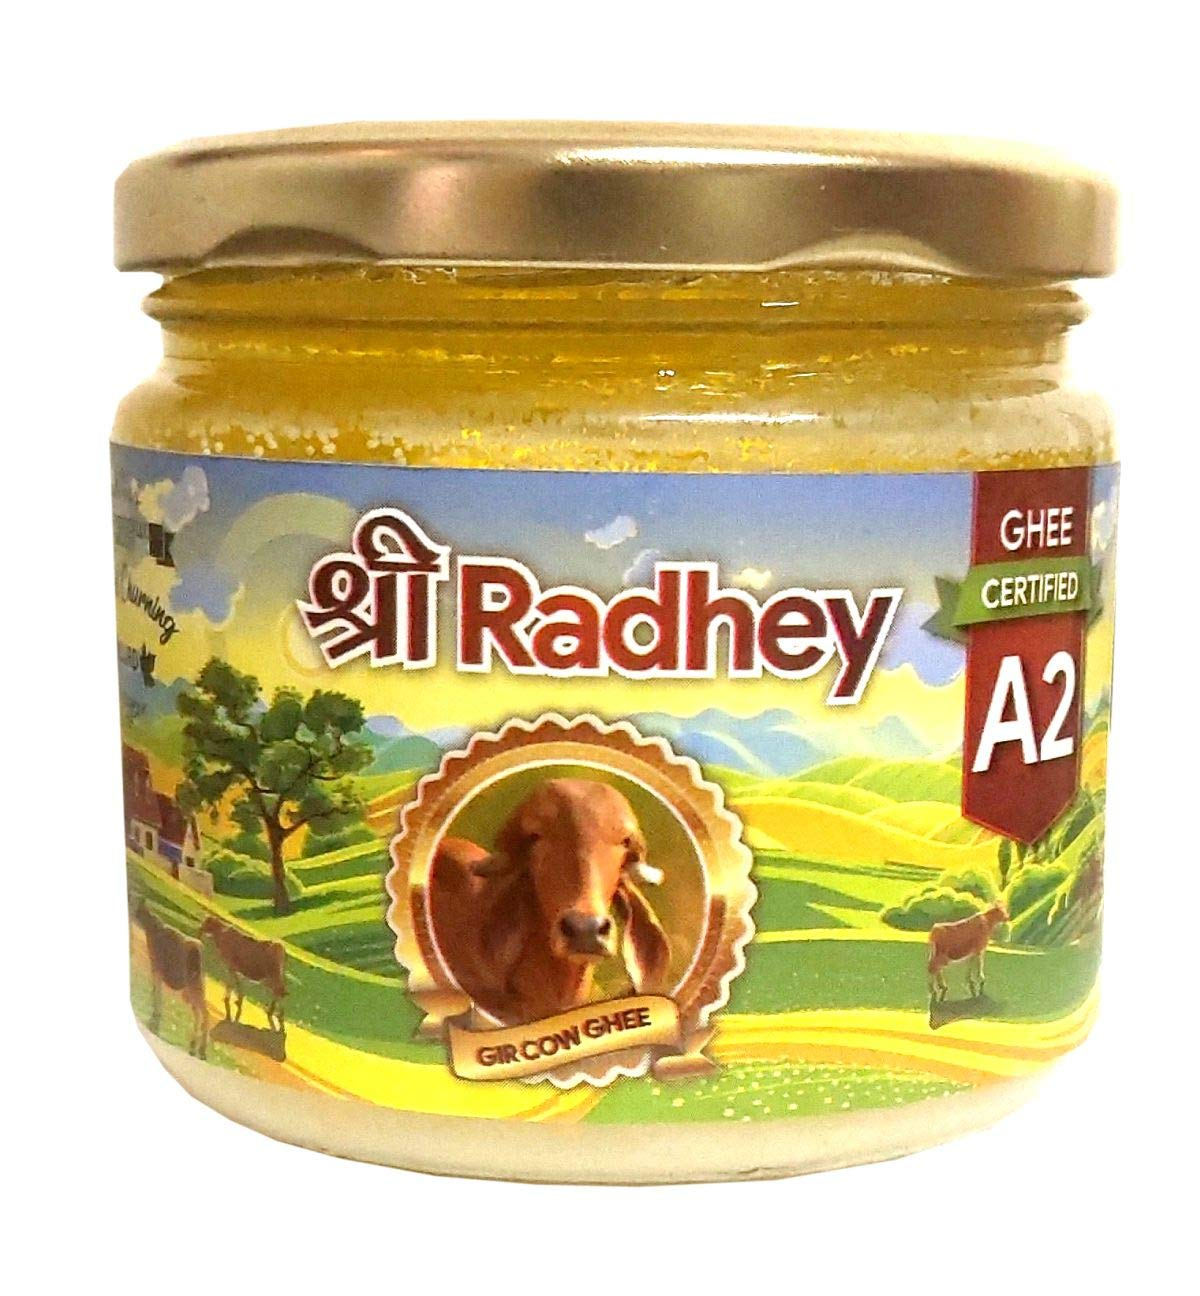 Shree Radhey Certified A2 Gir Cow Ghee - Gluten Free - (Traditionaly Hand Churned) (300 ml - 10.15 OZ)